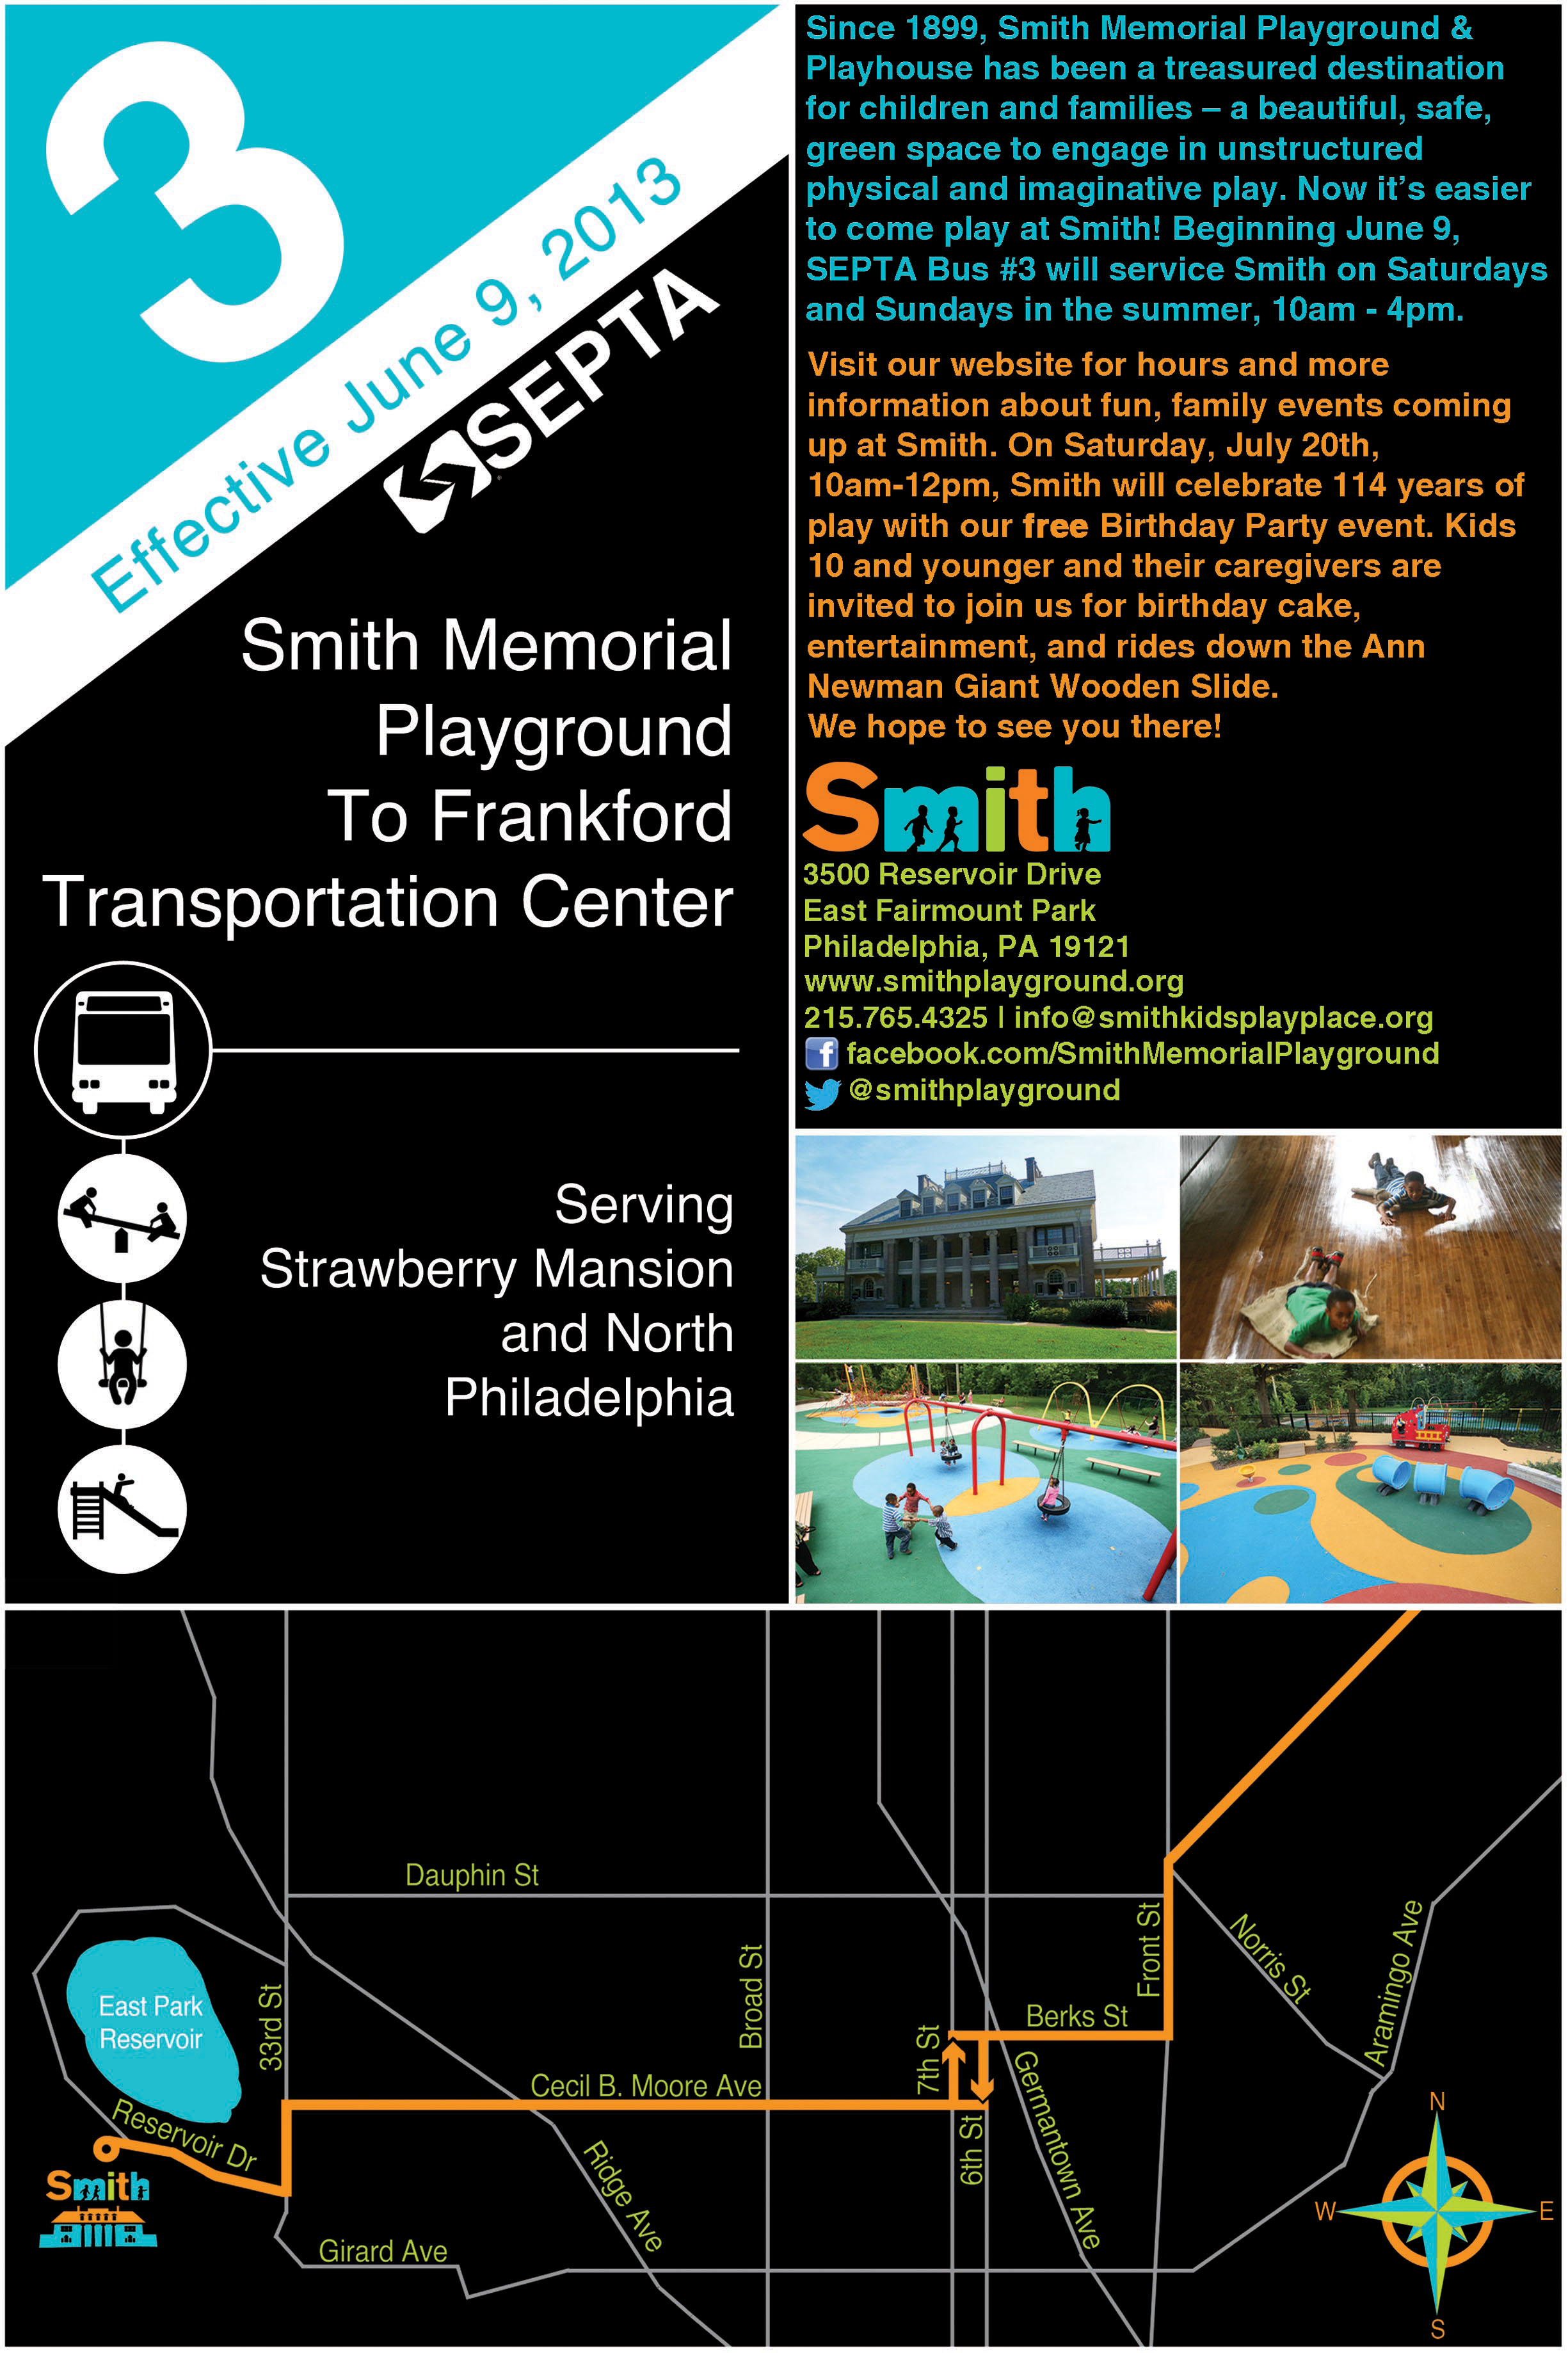 Smith Memorial Playground Amp Playhouse Directions To Smith